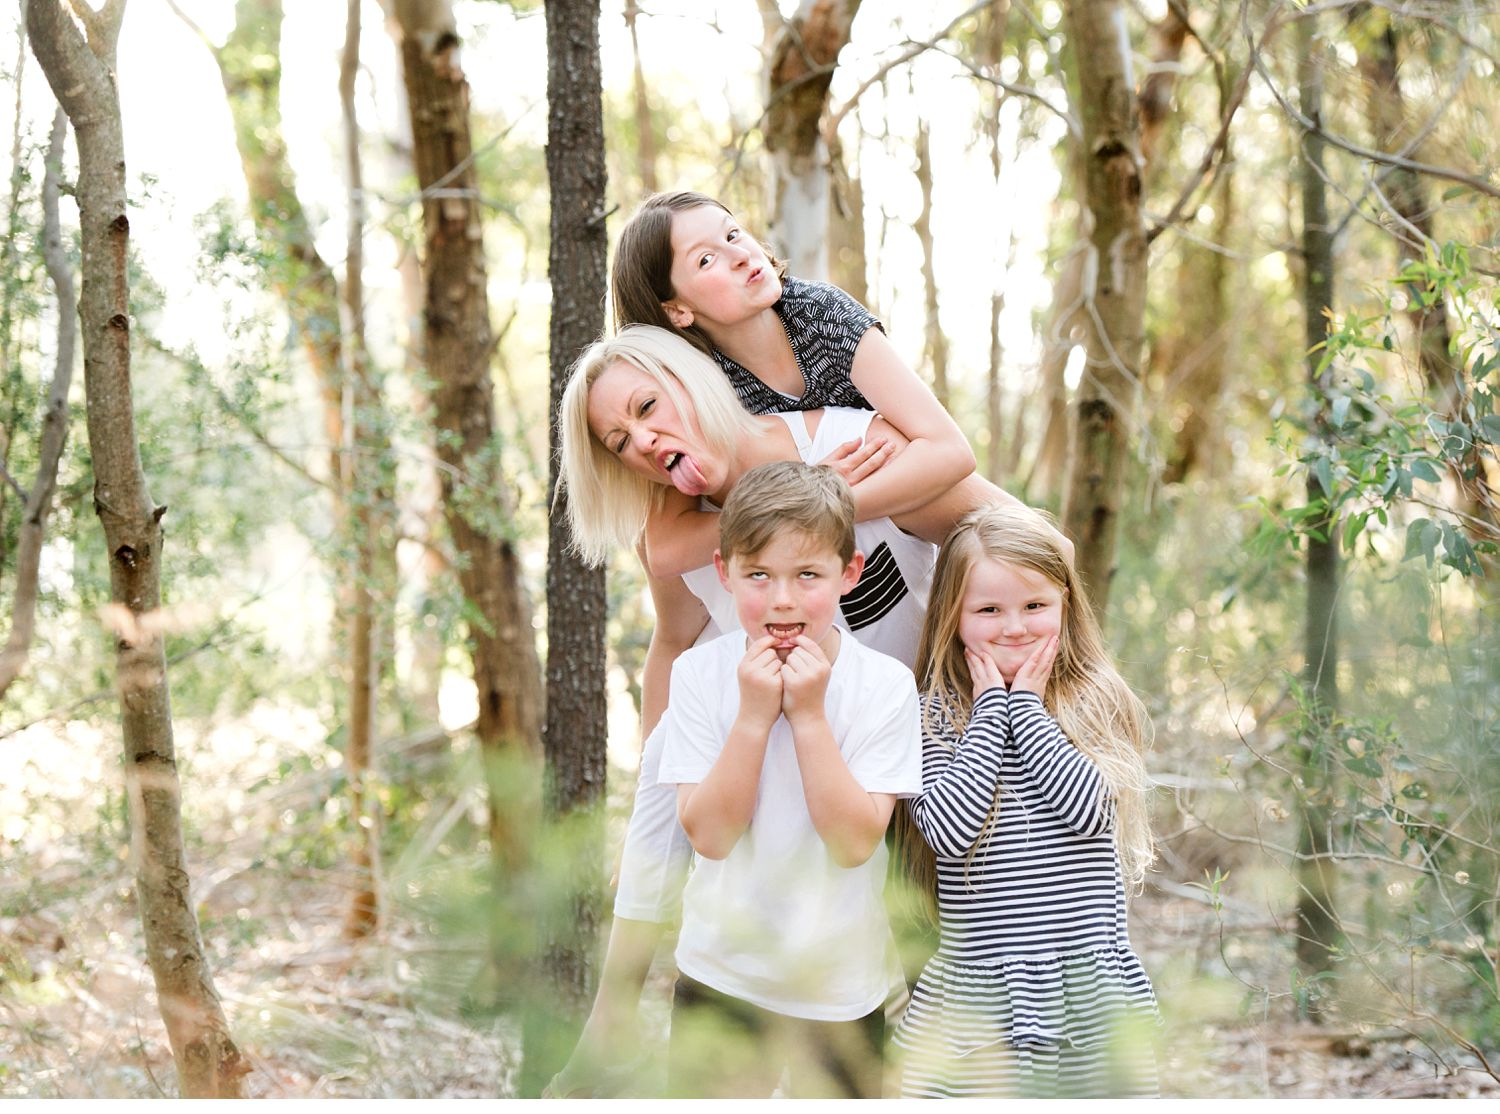 Natural-light-family-photographer-capturing-joy.jpg